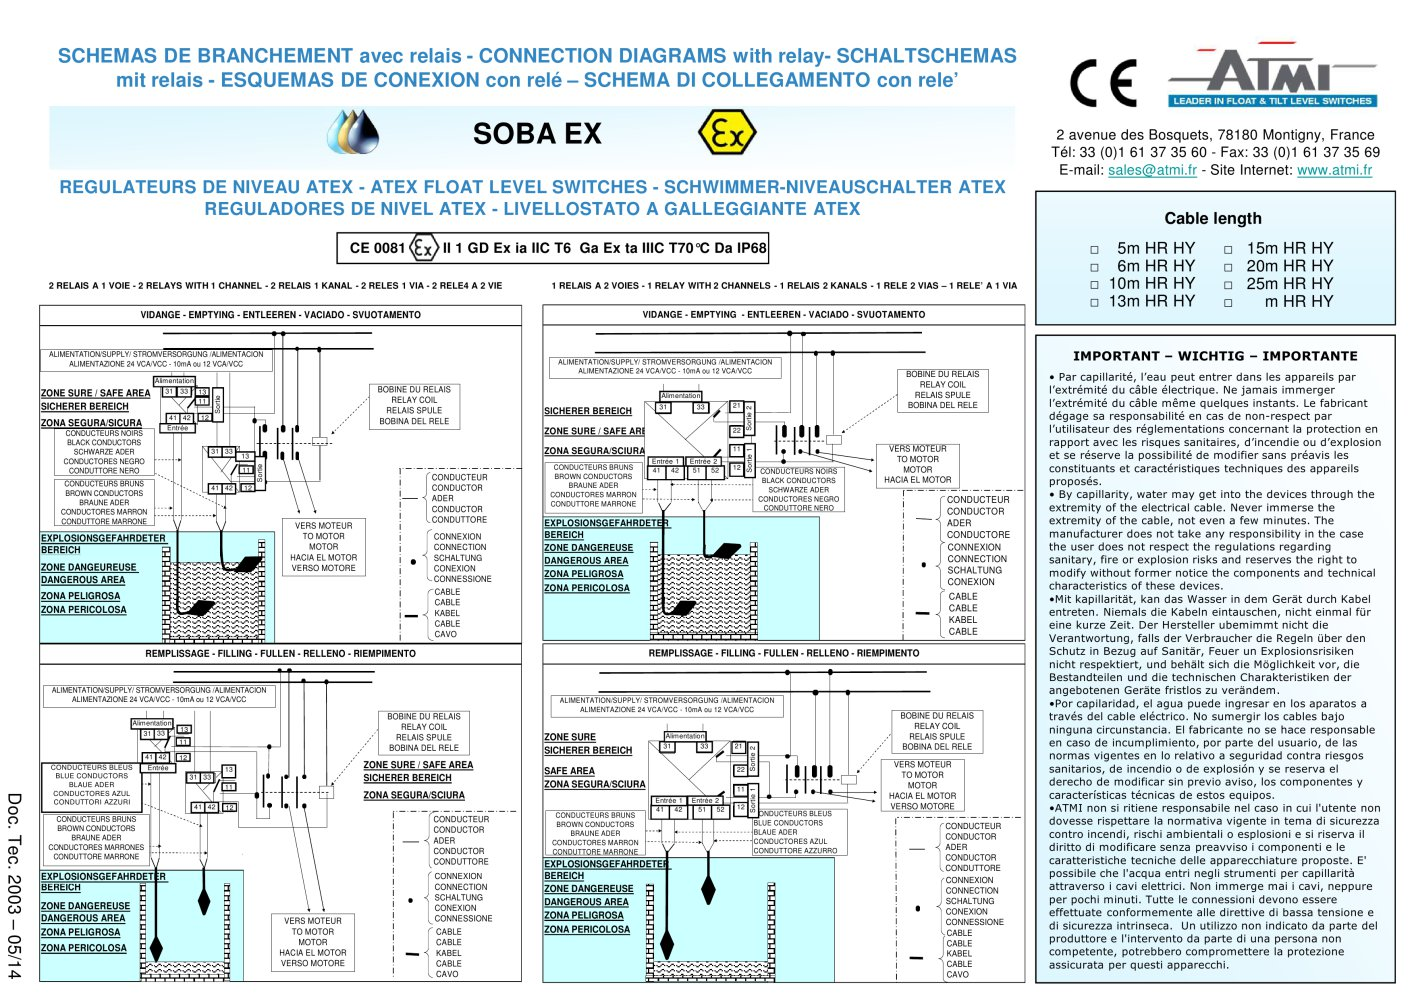 Wiring Diagrams Soba Ex Atex Certificate Atmi Pdf Catalogue Electronic Ballast Diagram 1 Pages